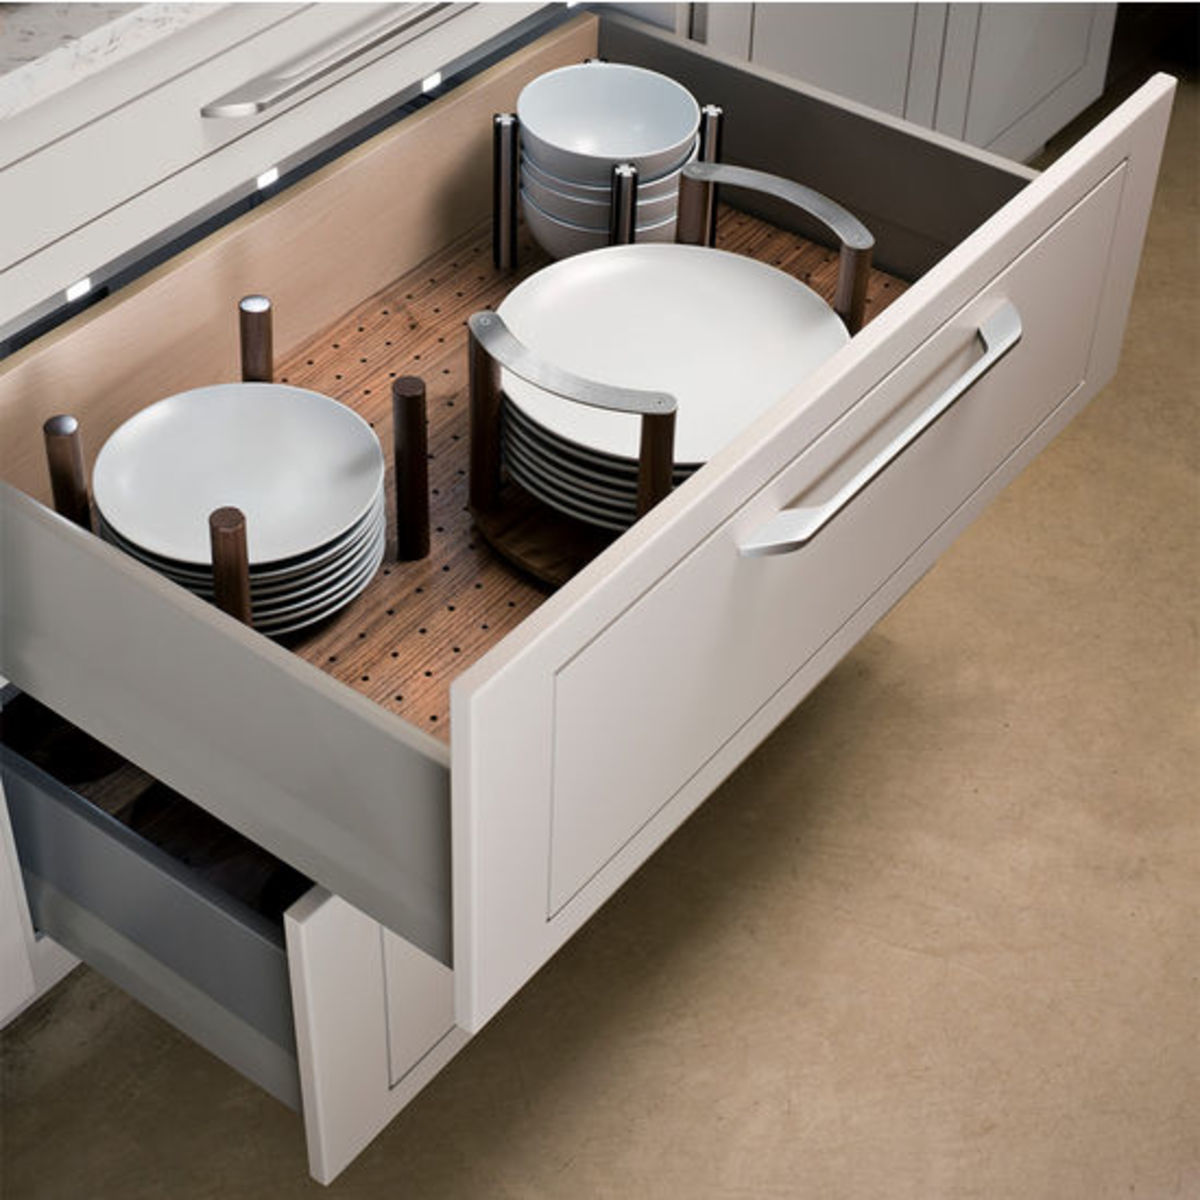 This drawer system makes it super easy to access dishes set the table.